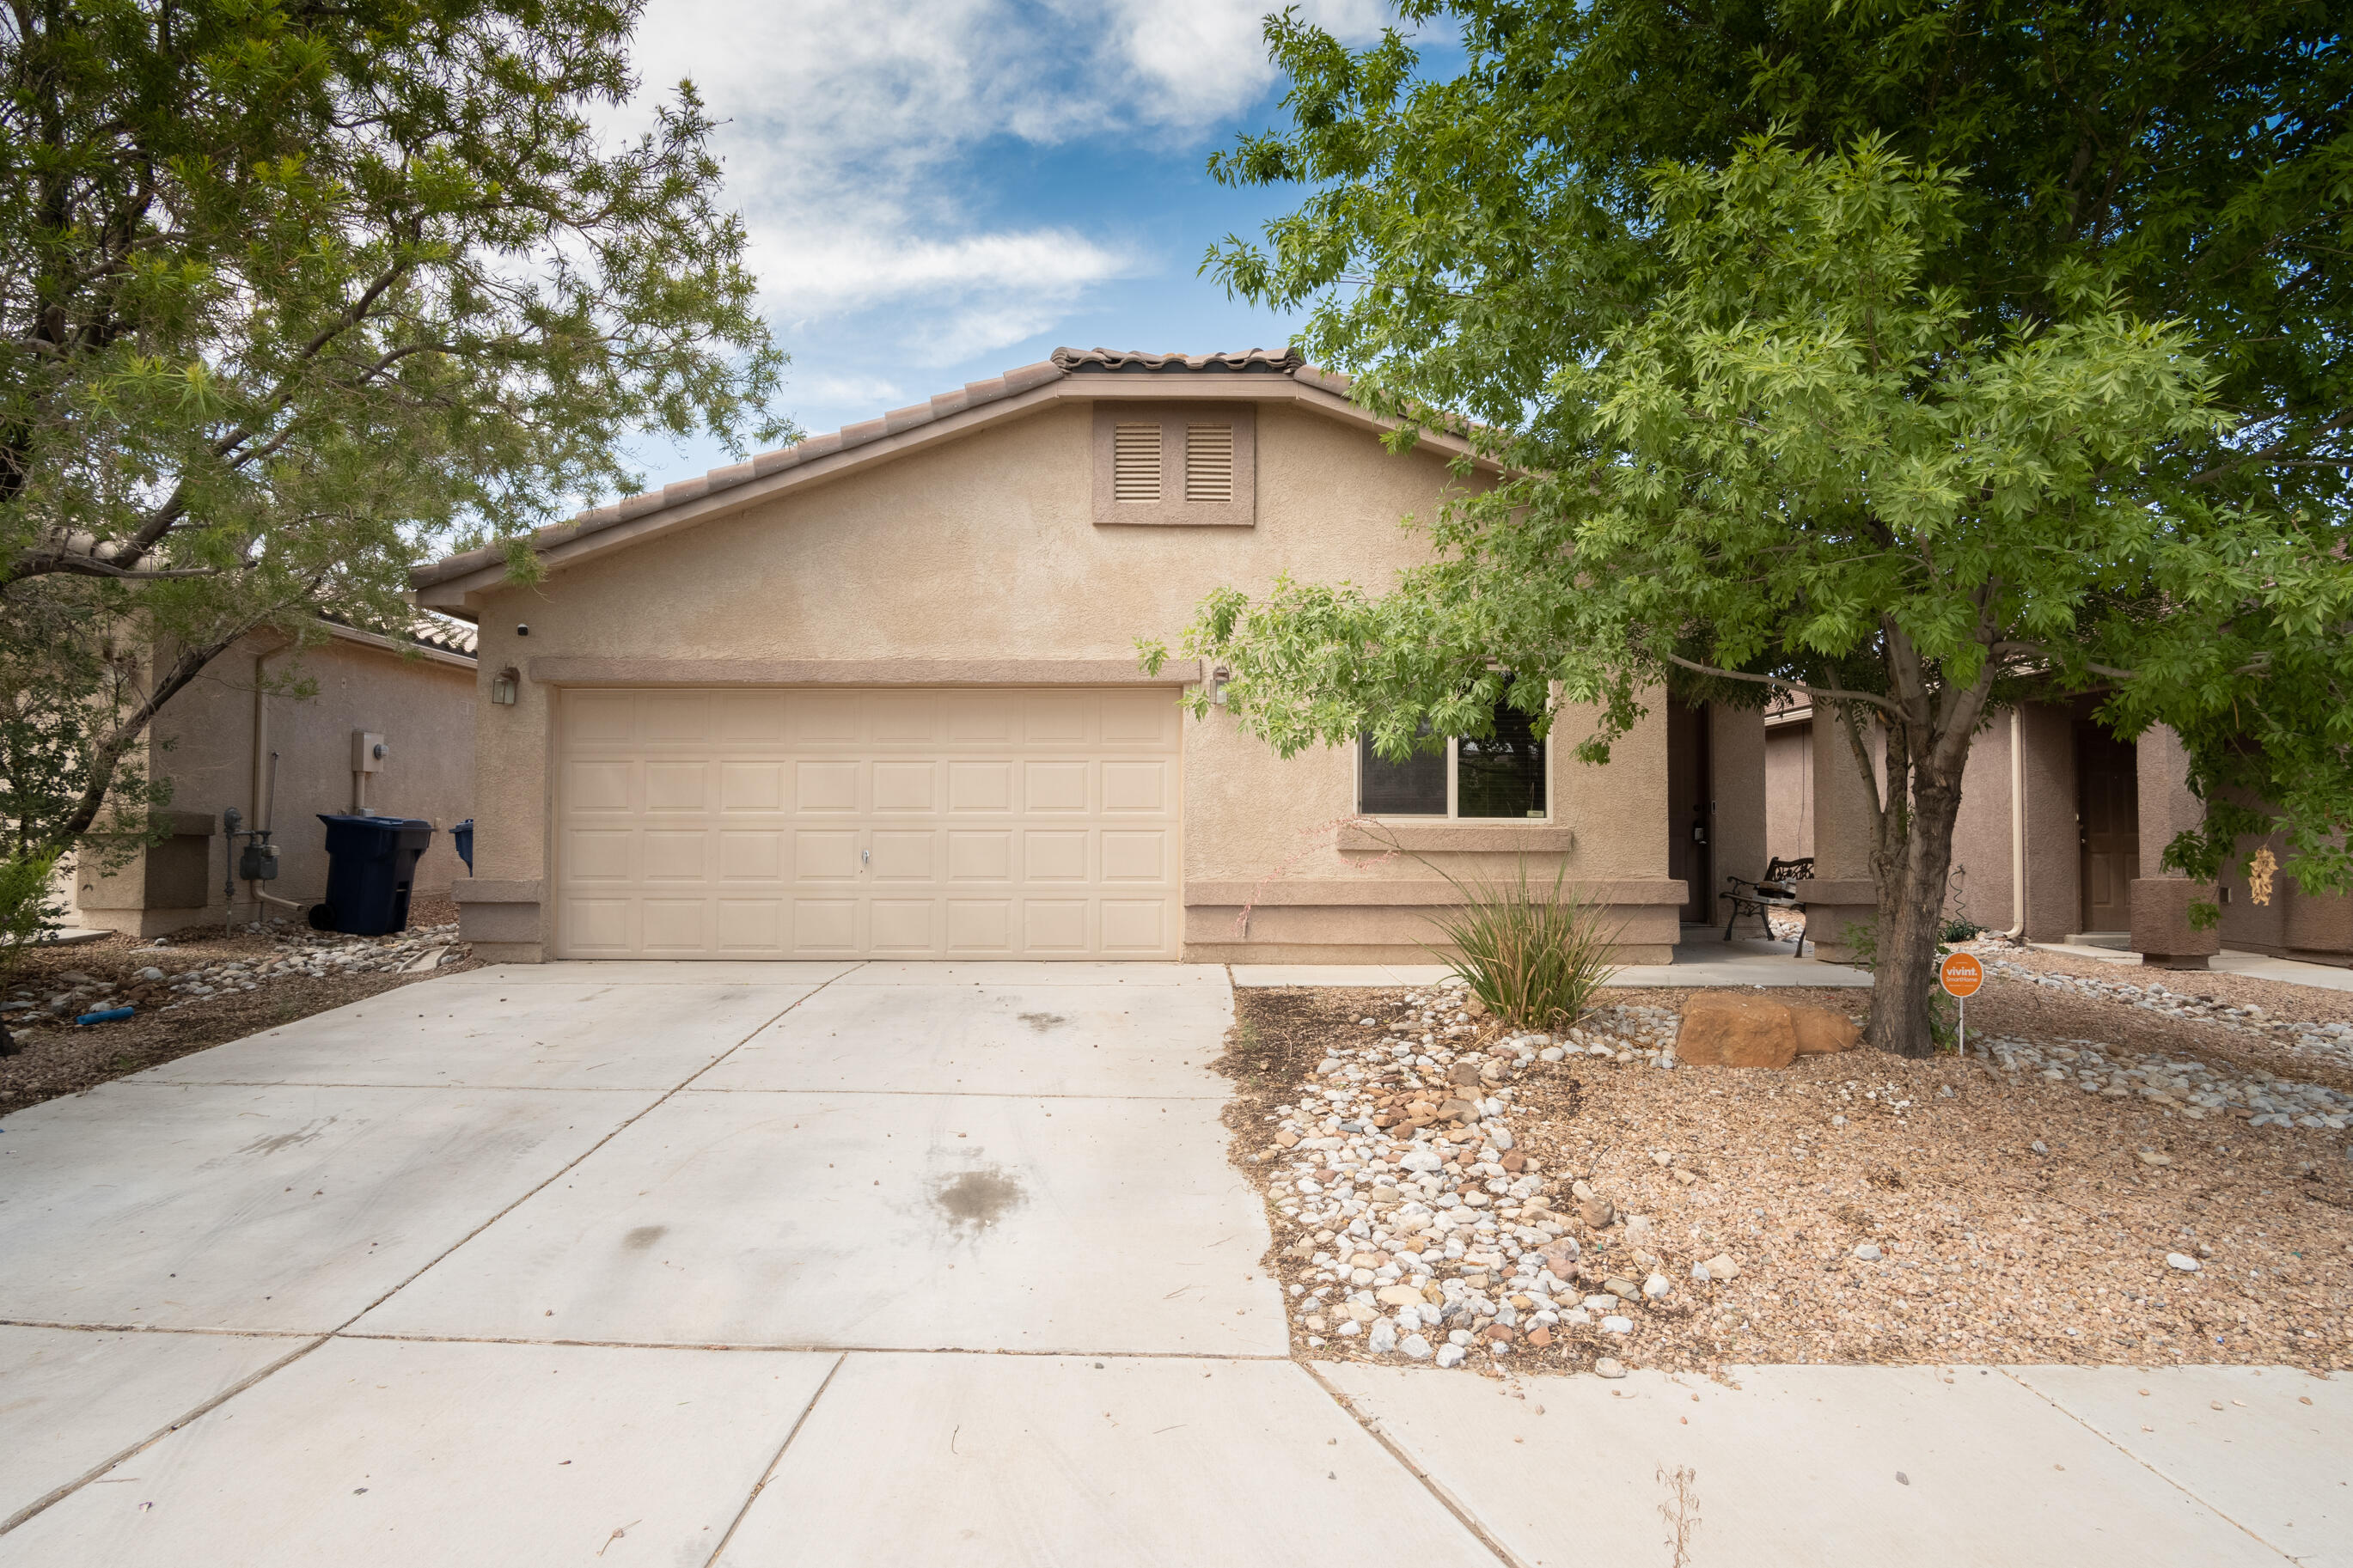 Wonderful chance to own this 3 bed 2 bath home with an open floor plan for under 200K! Great Los Lunas location, close to shopping, parks and freeway! Call to schedule your showing today!